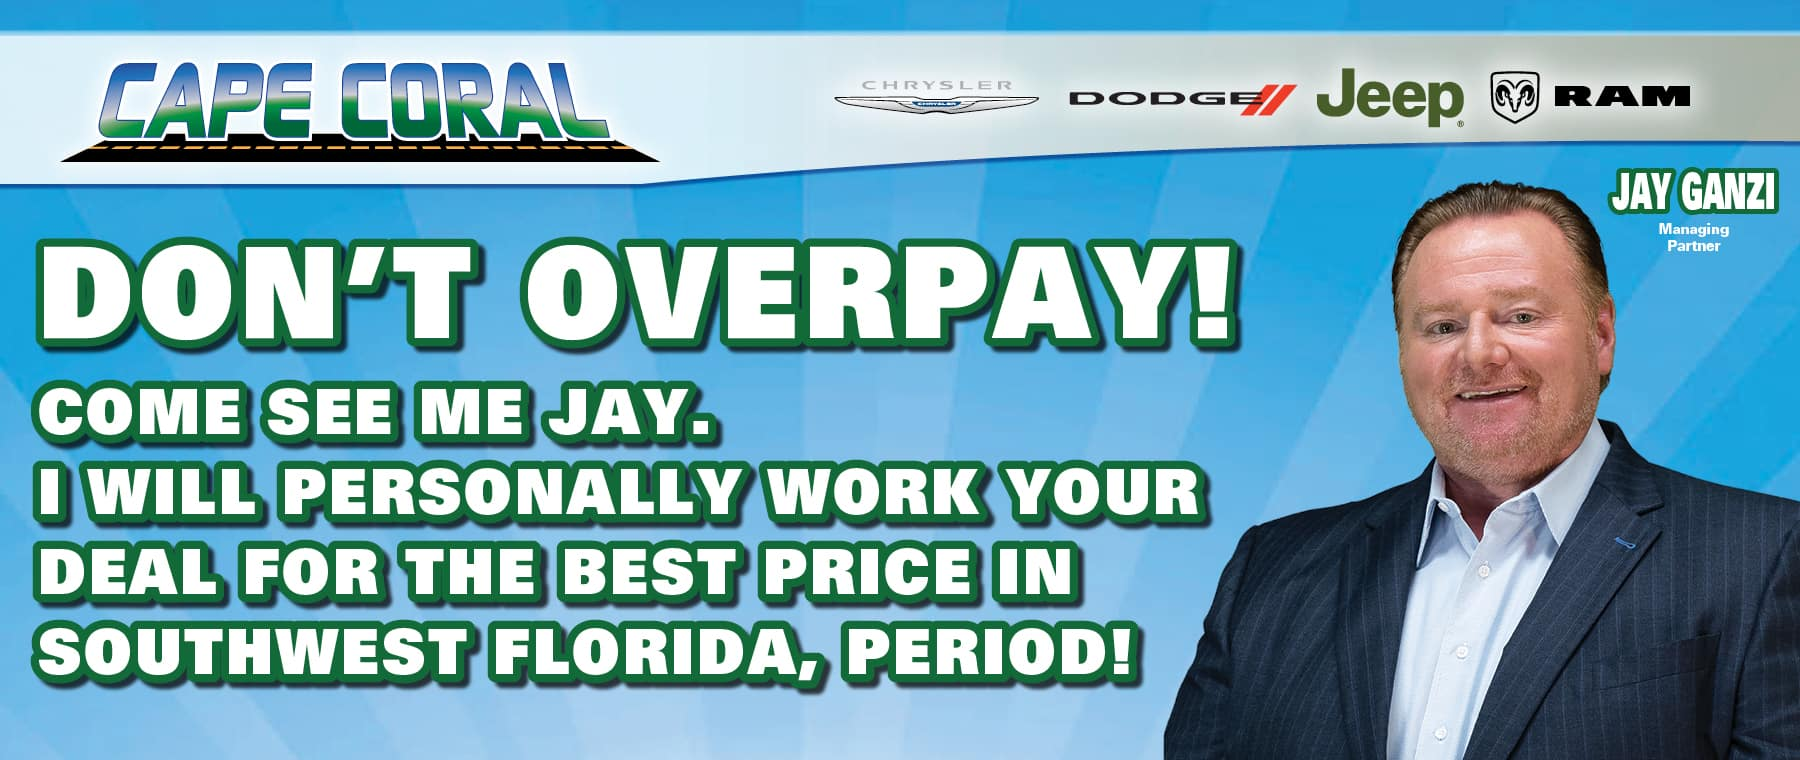 Don't Over Pay!